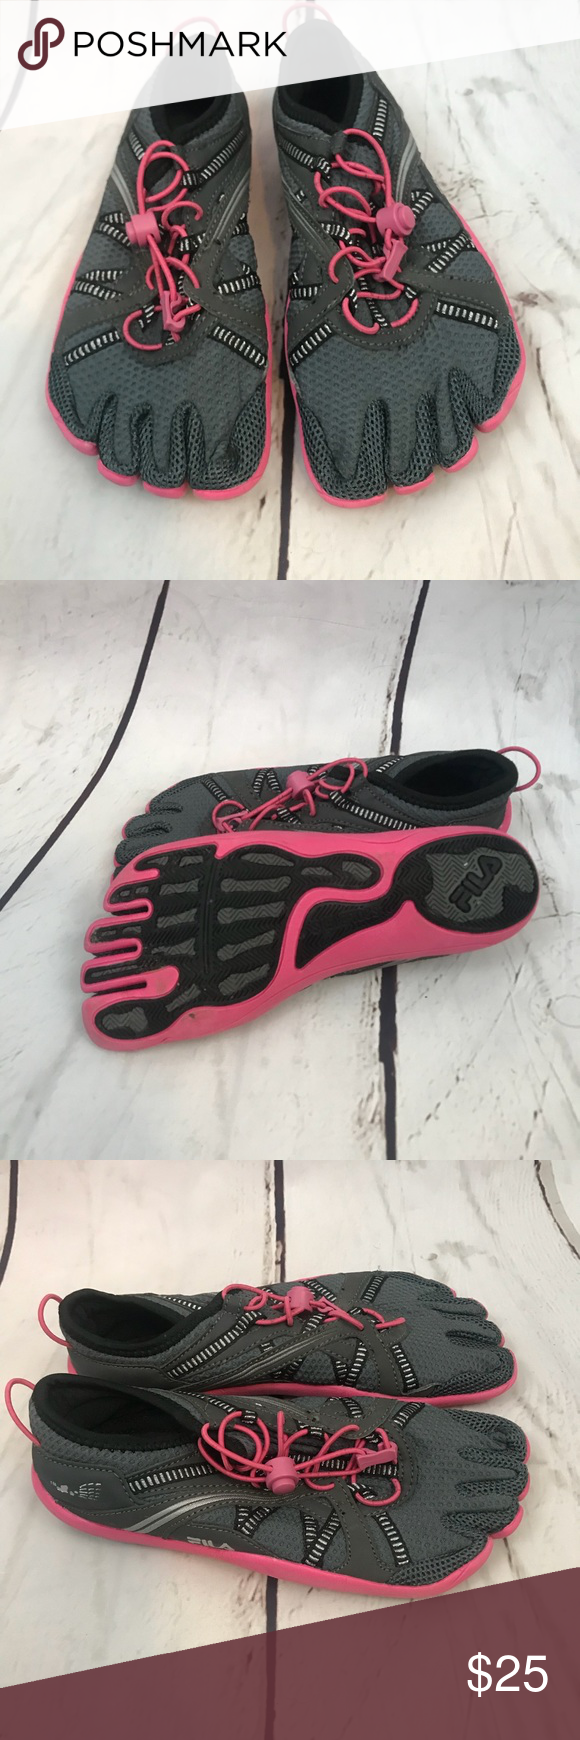 b39eaba7f787 Fila Skele toes woman s size 7 Worn twice great for running or walking on  the beach. Size 7 in excellent condition Fila Shoes